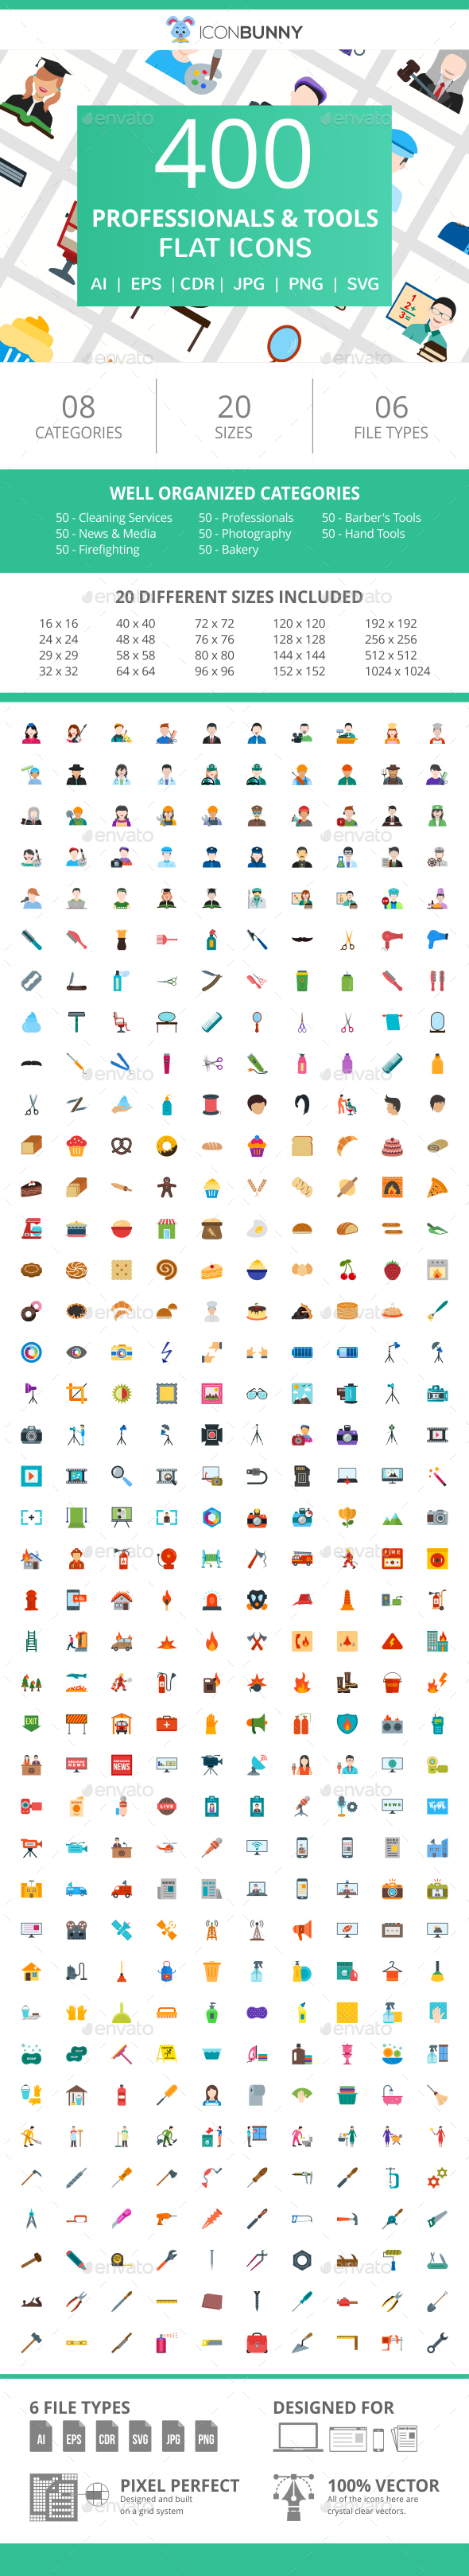 400 Professionals & Their Tools Flat Icons